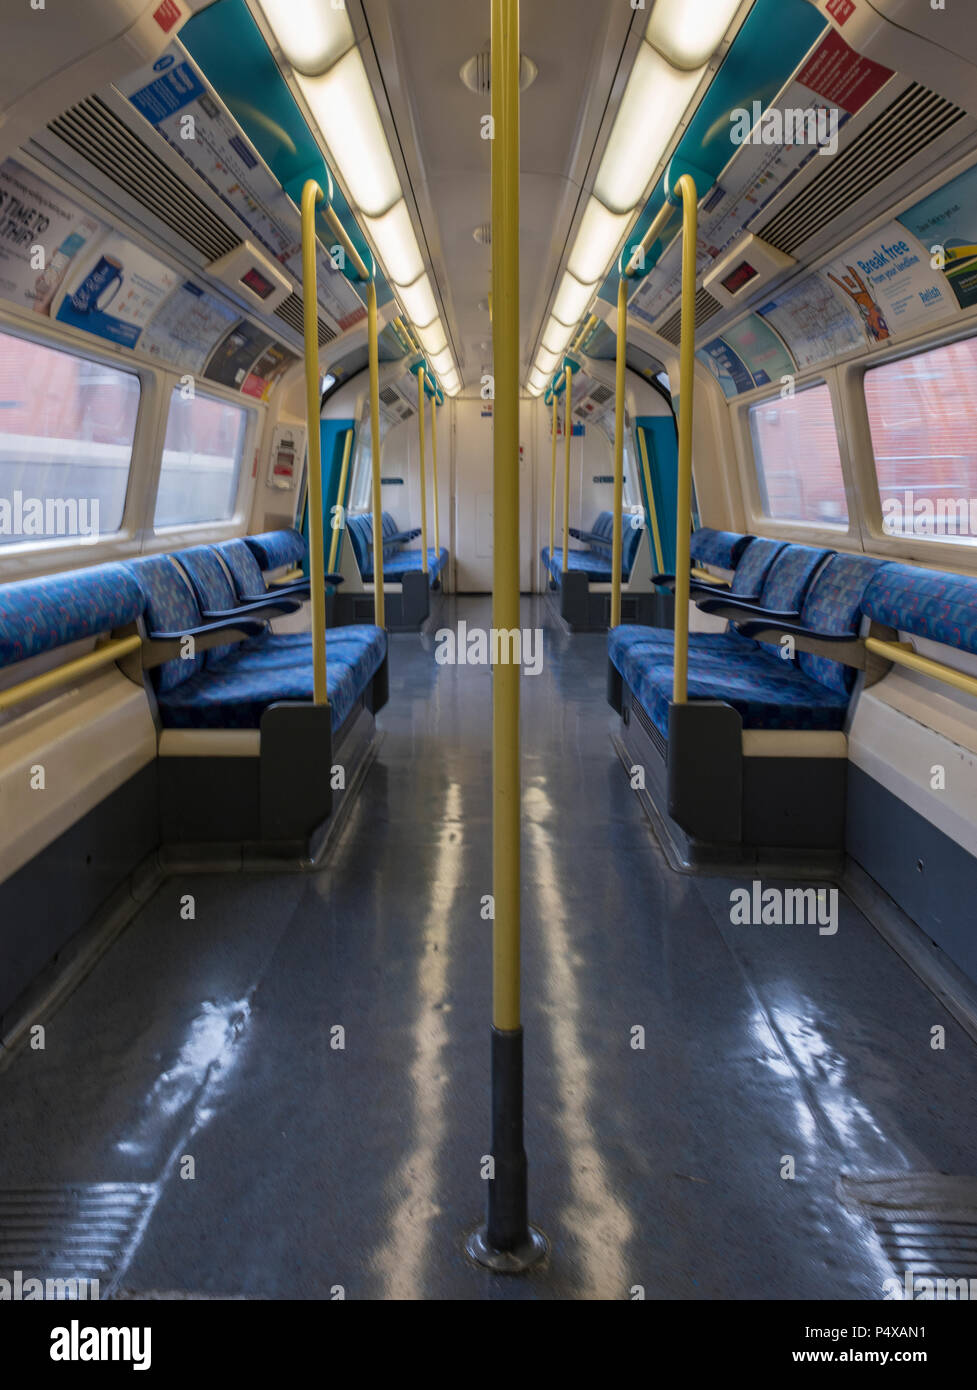 the inside of a london underground carriage on a tube train. - Stock Image